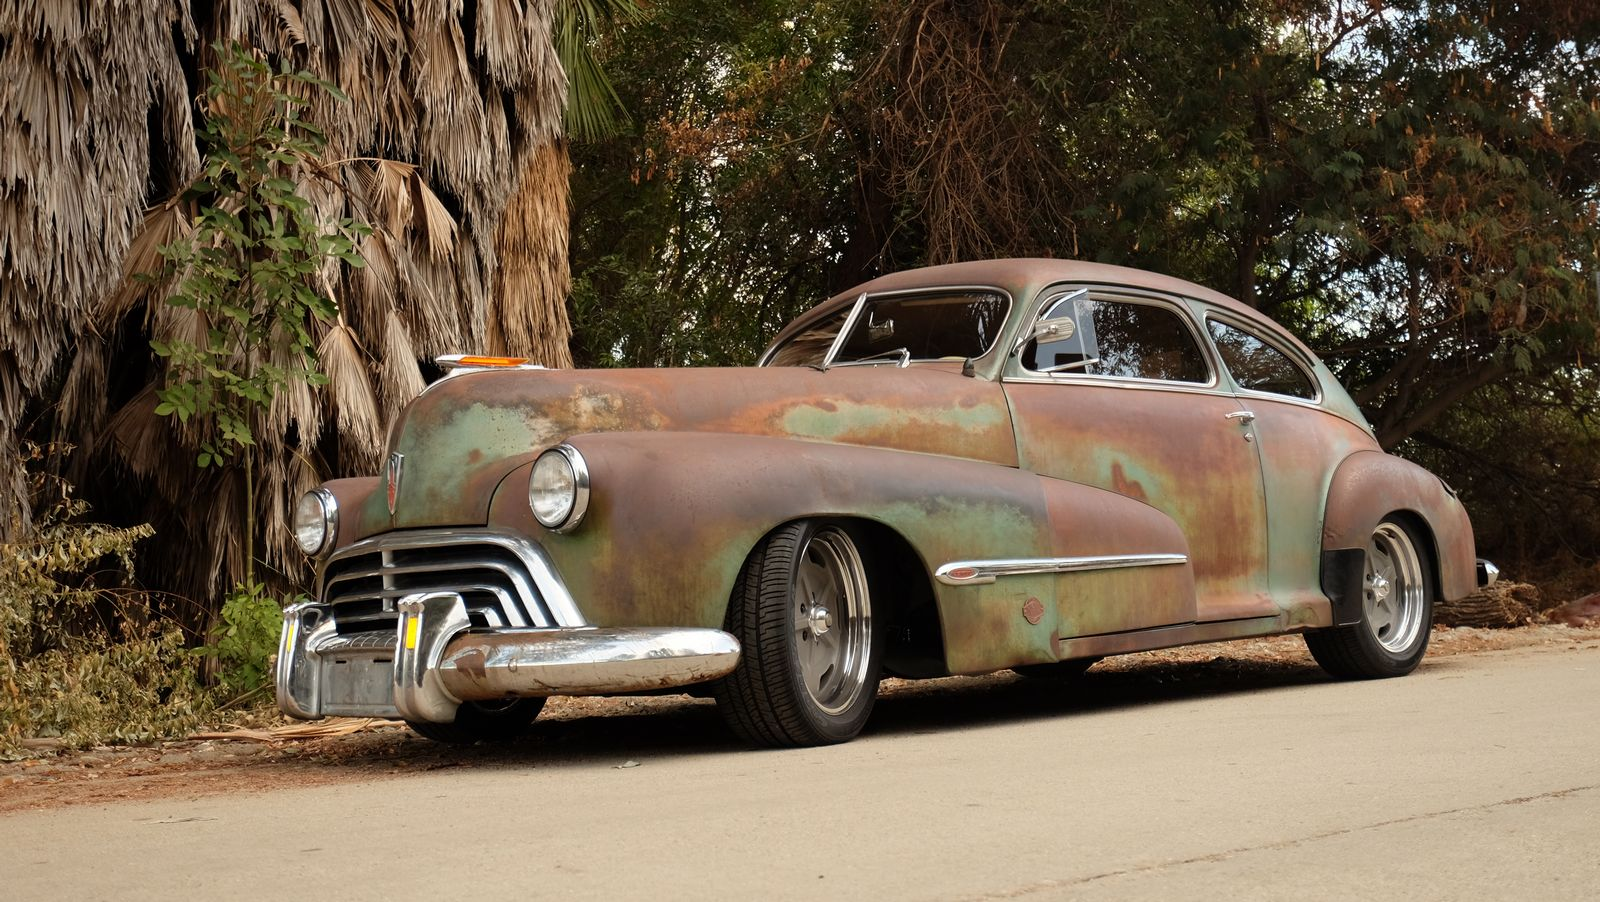 Icon S Derelict Oldsmobile Perfectly Combines Old And New